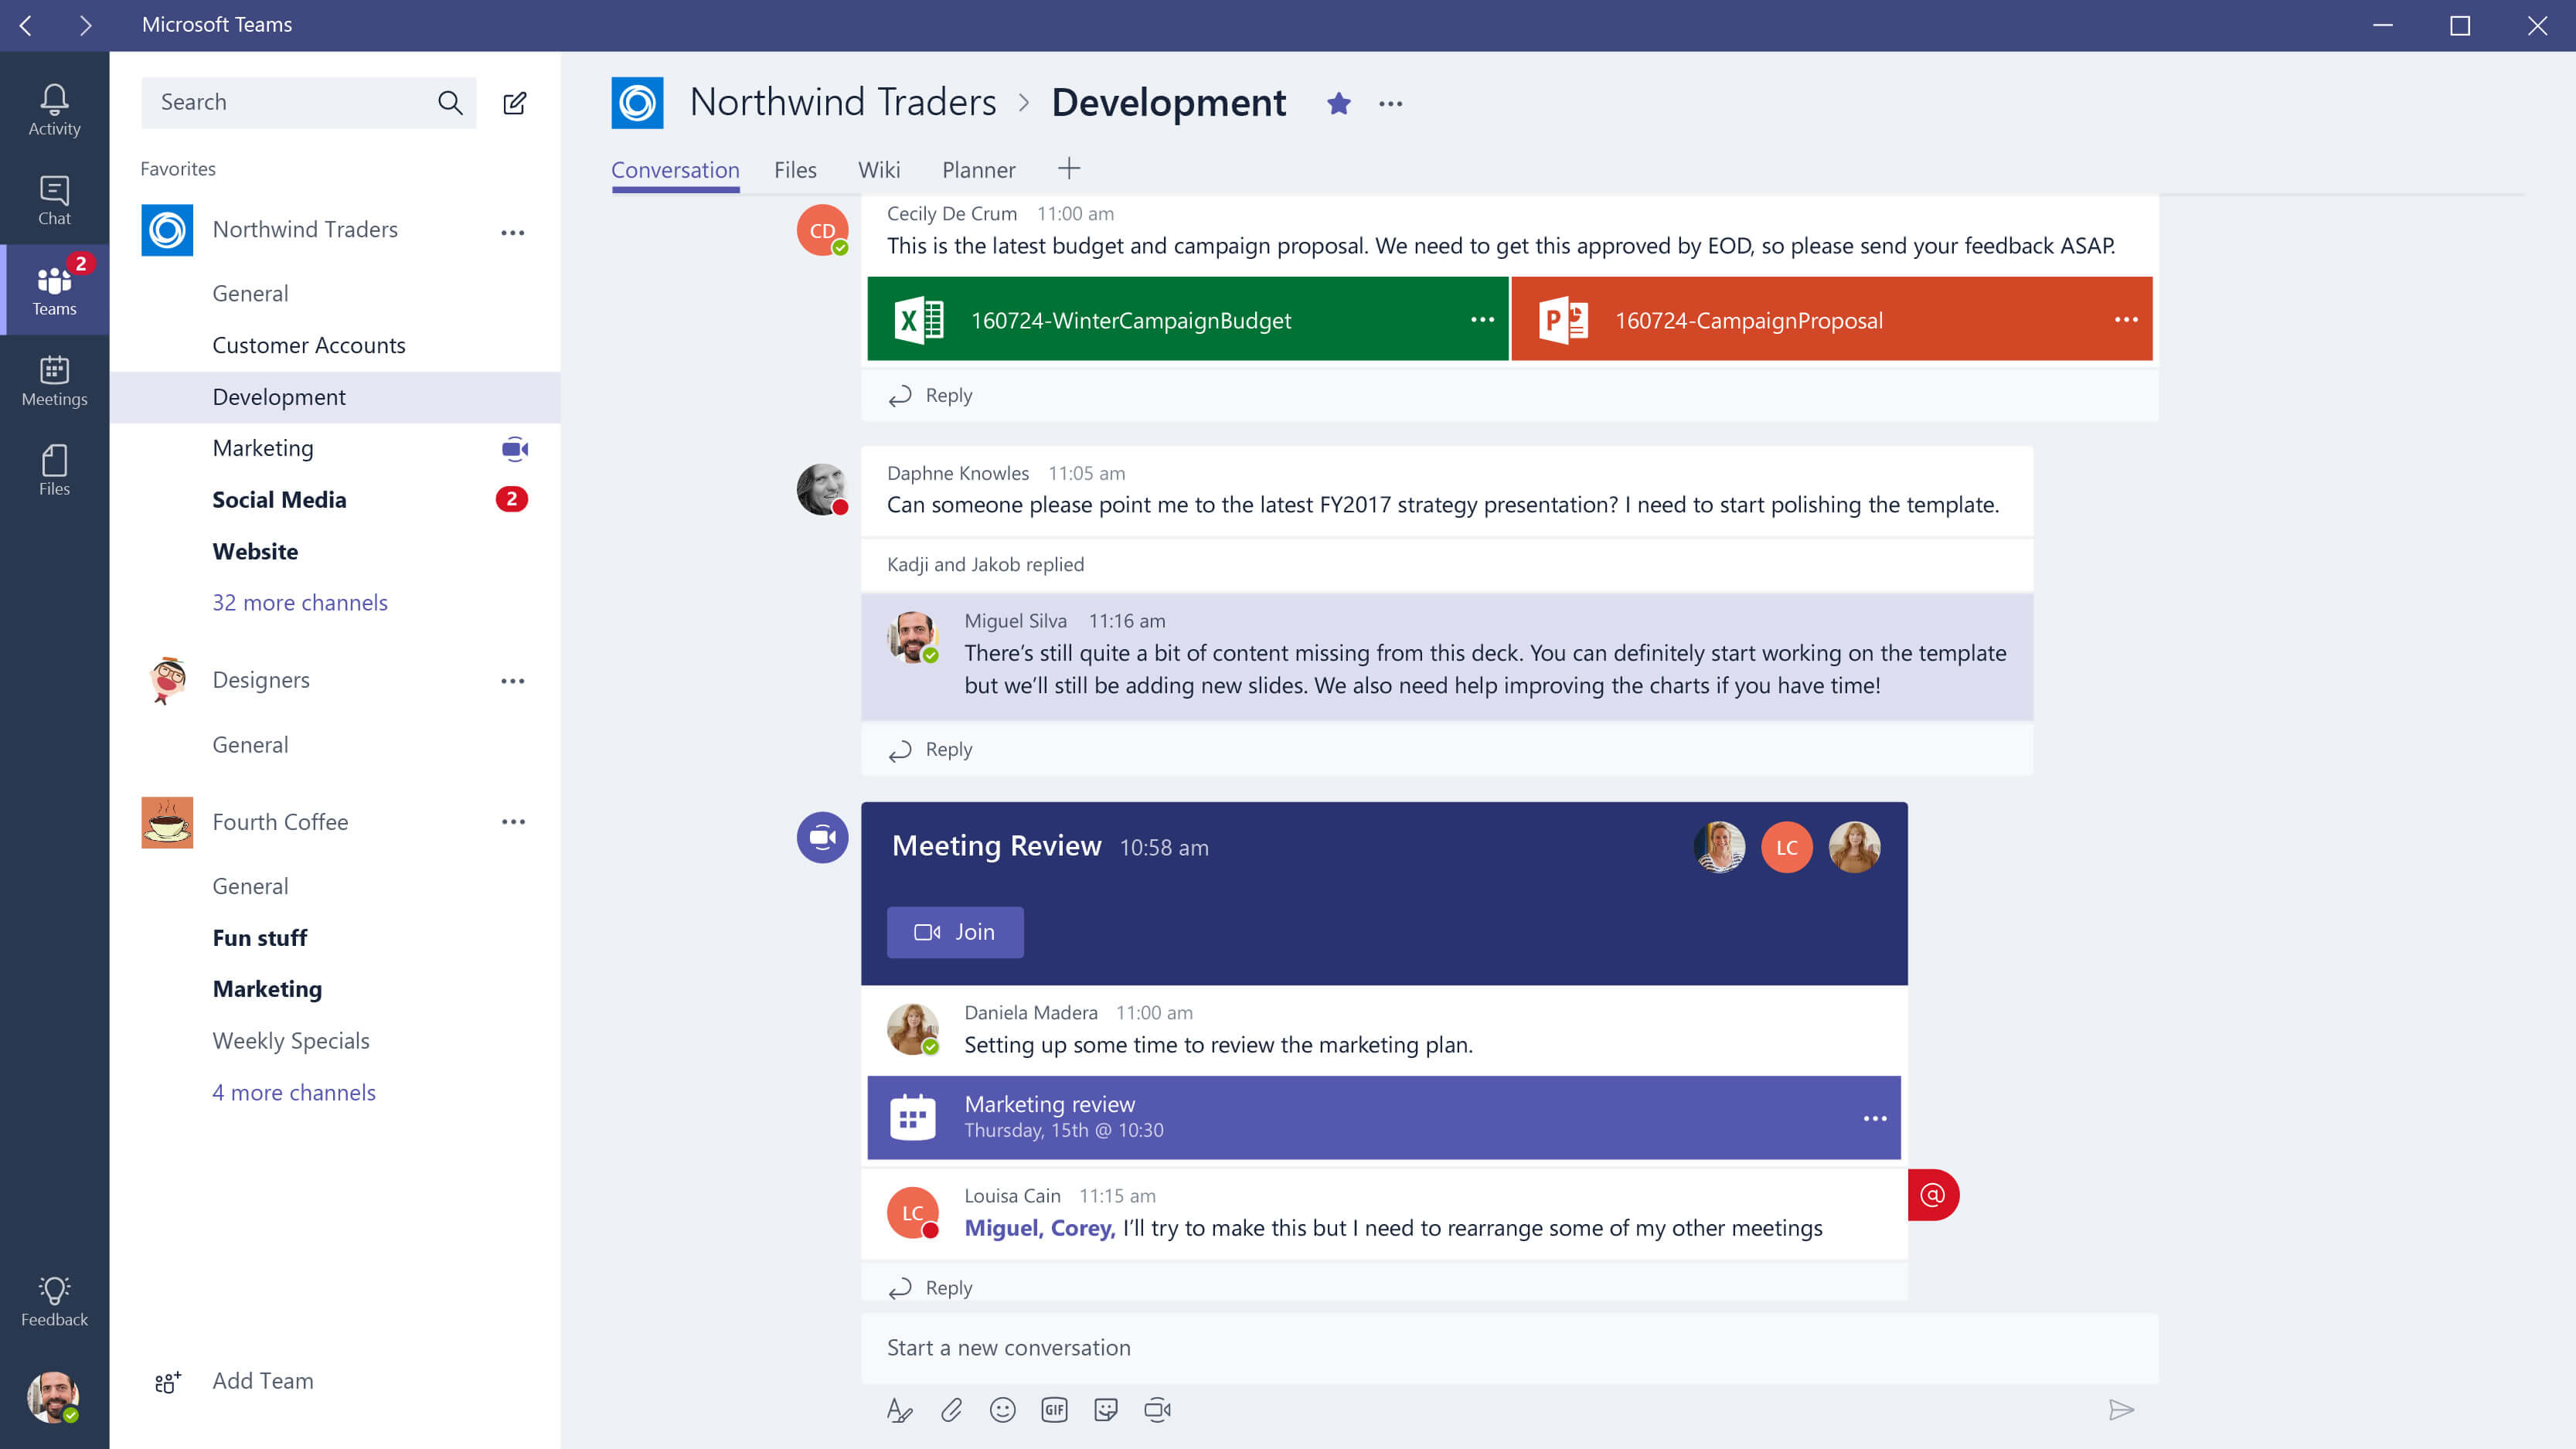 Microsoft prohibits the use of Slack internally, favors its own Teams collaboration software